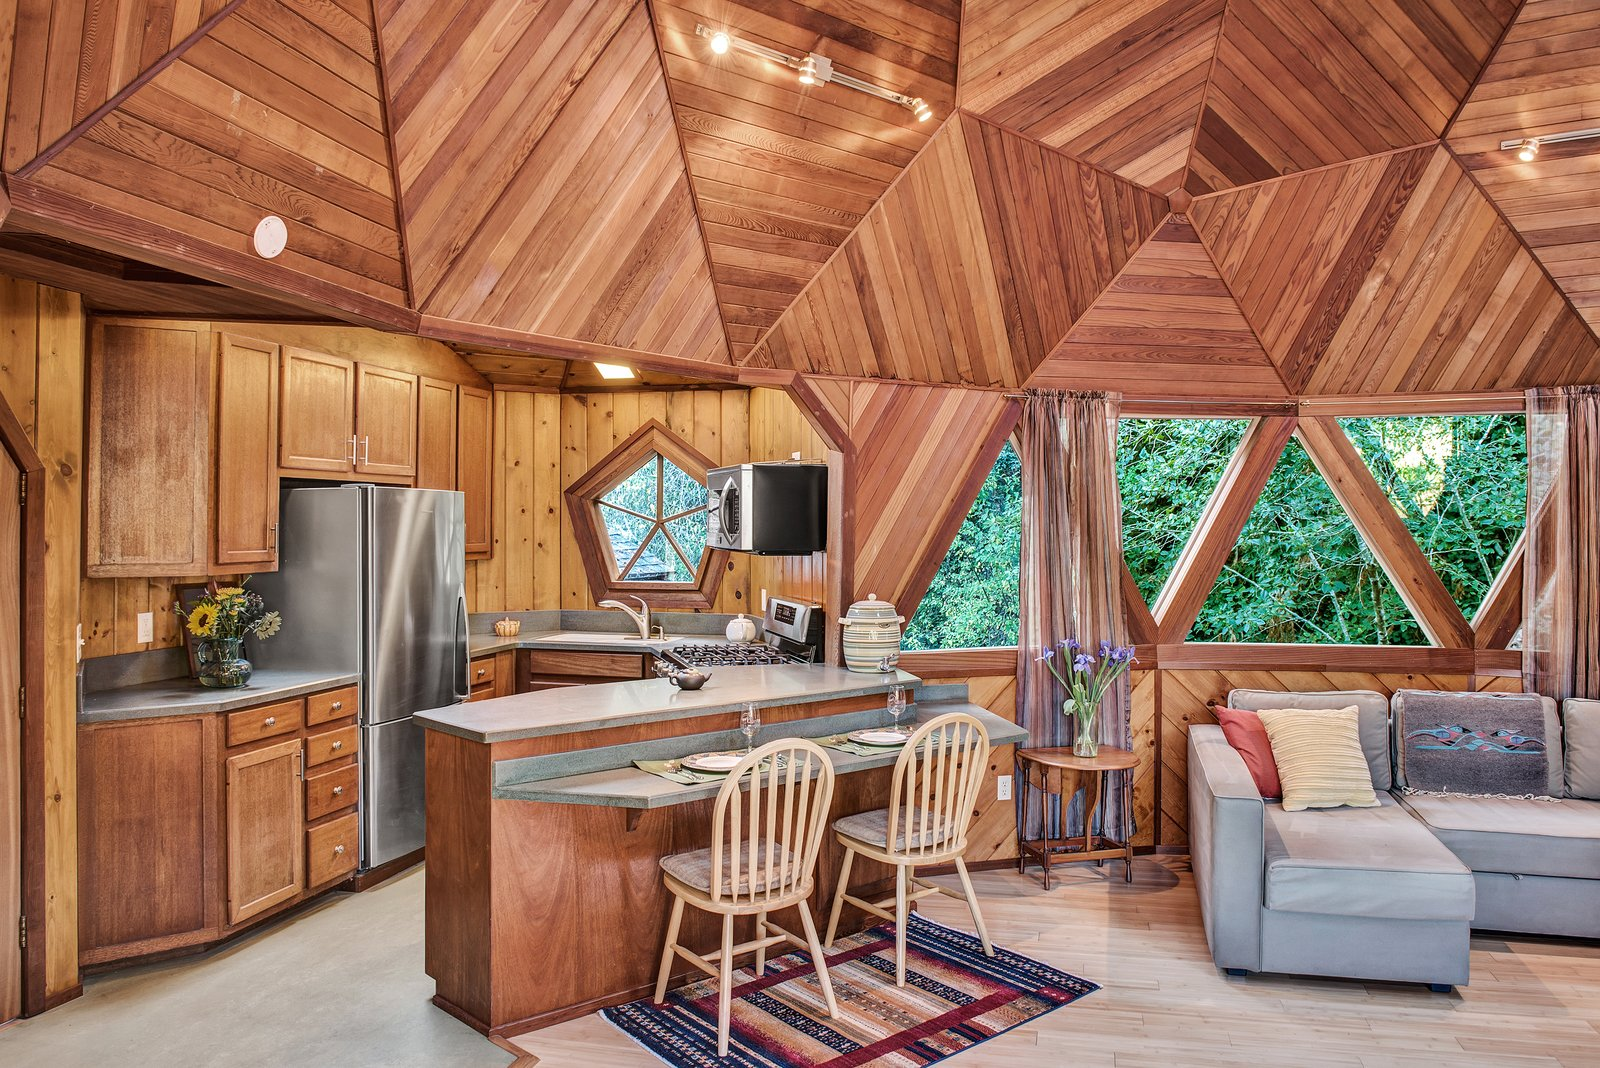 Kitchen, Laminate, Wood, Refrigerator, Light Hardwood, Microwave, Wood, Concrete, Ceiling, Range, Track, and Drop In Triangular windows let plenty of light in.  Best Kitchen Wood Track Ceiling Concrete Refrigerator Light Hardwood Drop In Photos from A Geodesic Getaway in Northern California Asks $475K